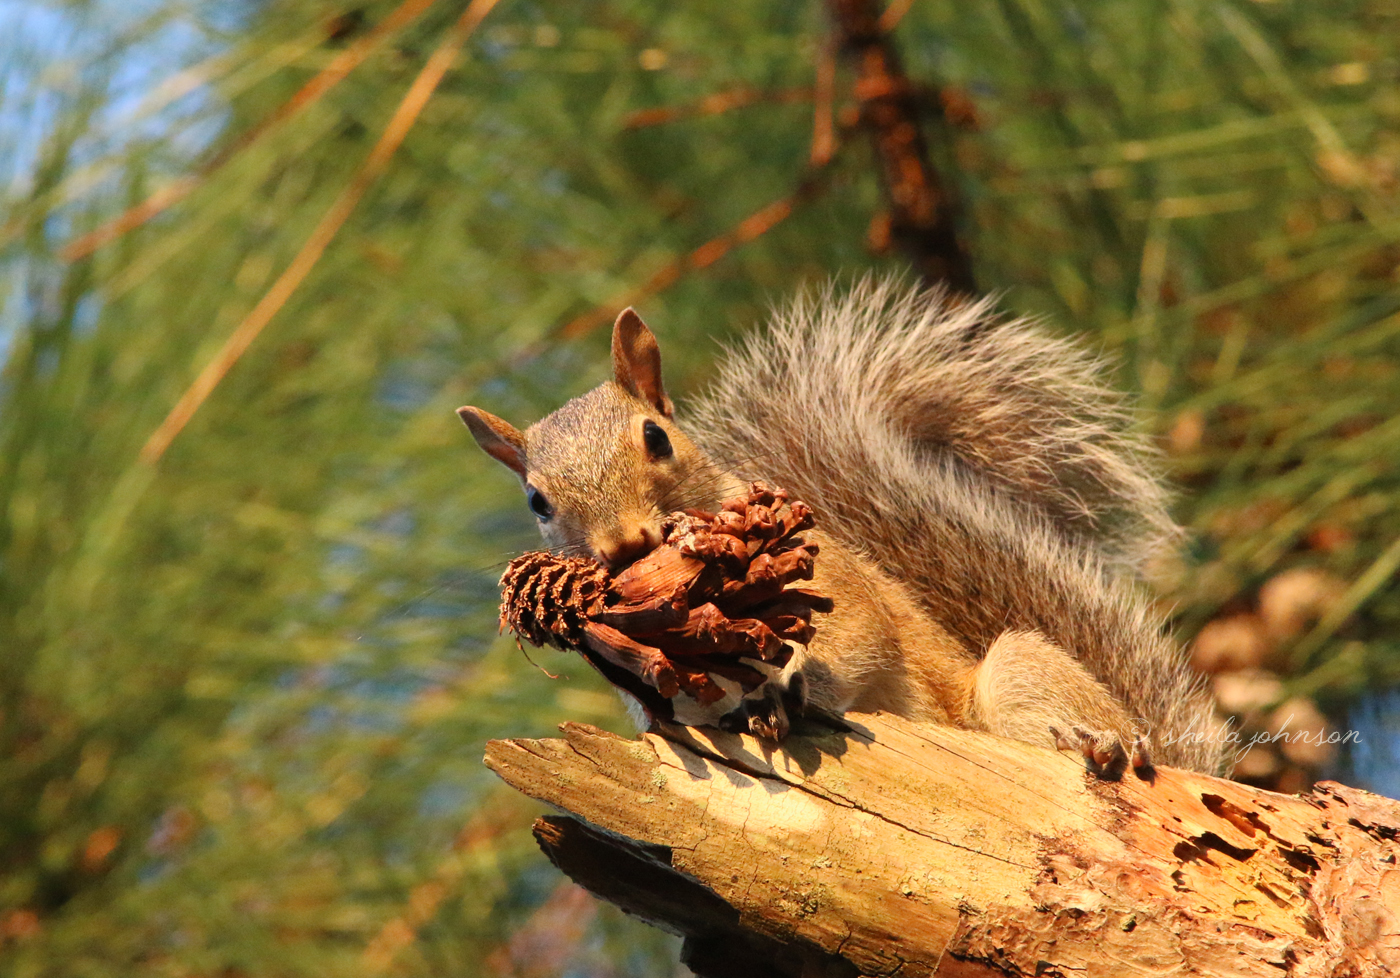 A Frisky Squirrel Dares Anyone To Take His Pine Cone. 'i Has Pine Cone. You Has None.'